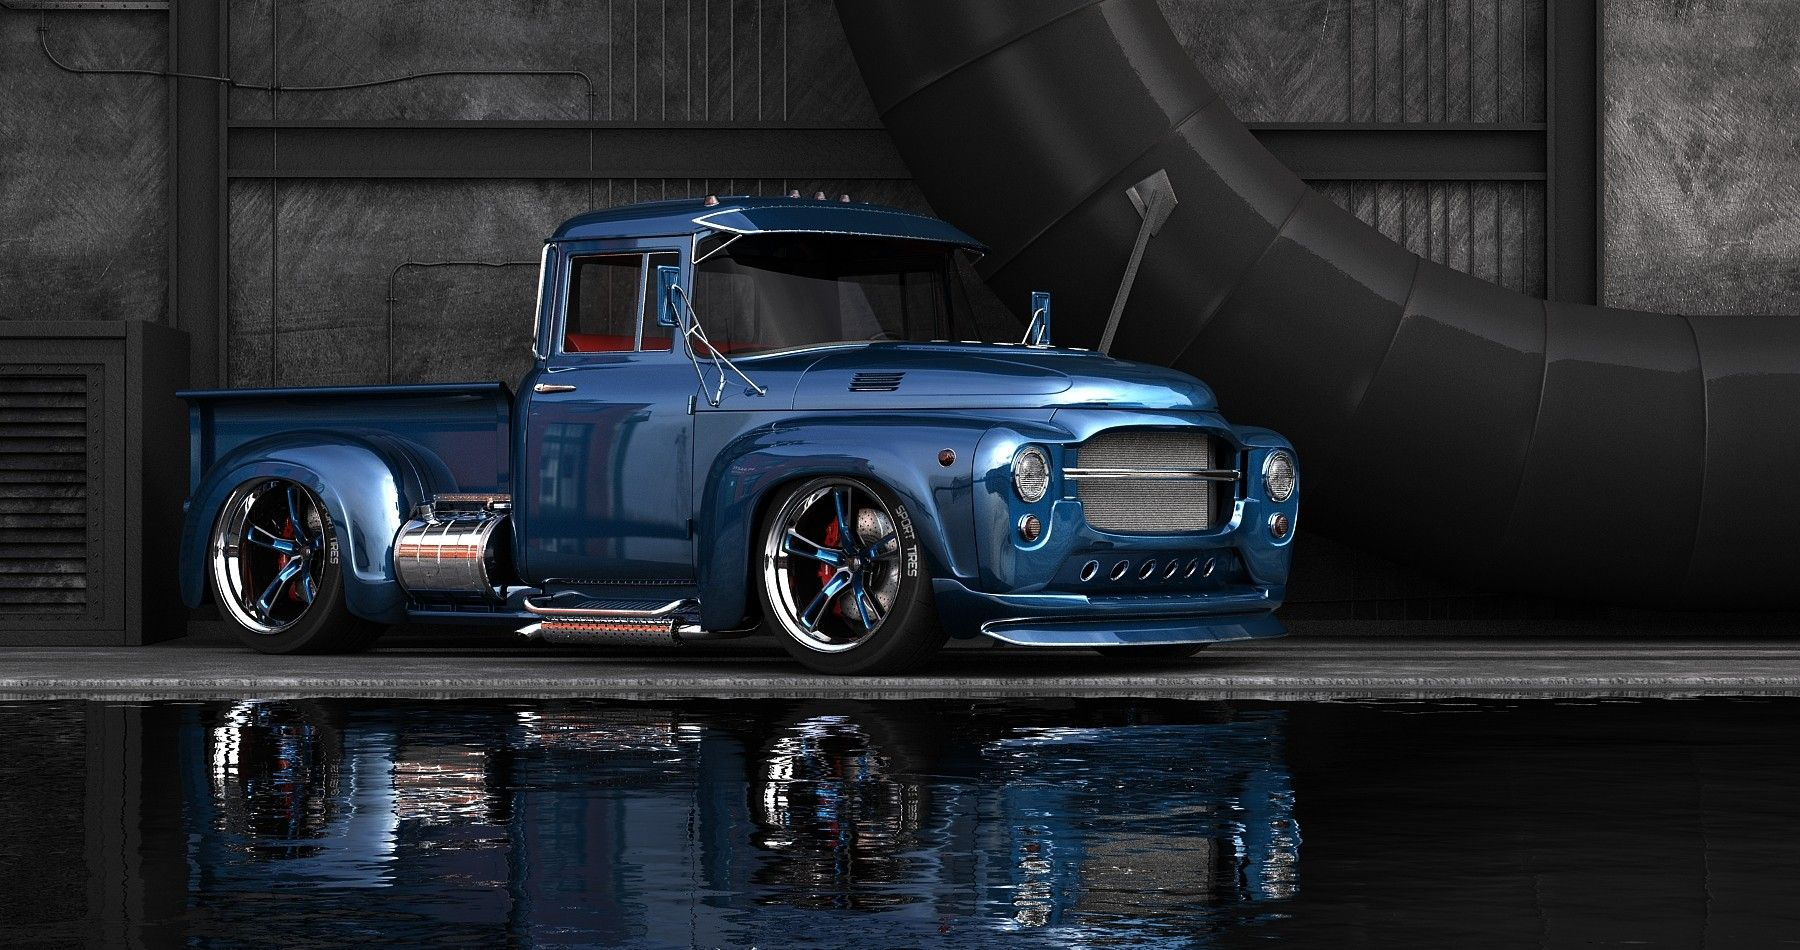 custom stance 3d max | zil | Pinterest | 3d, Cars and Vehicle